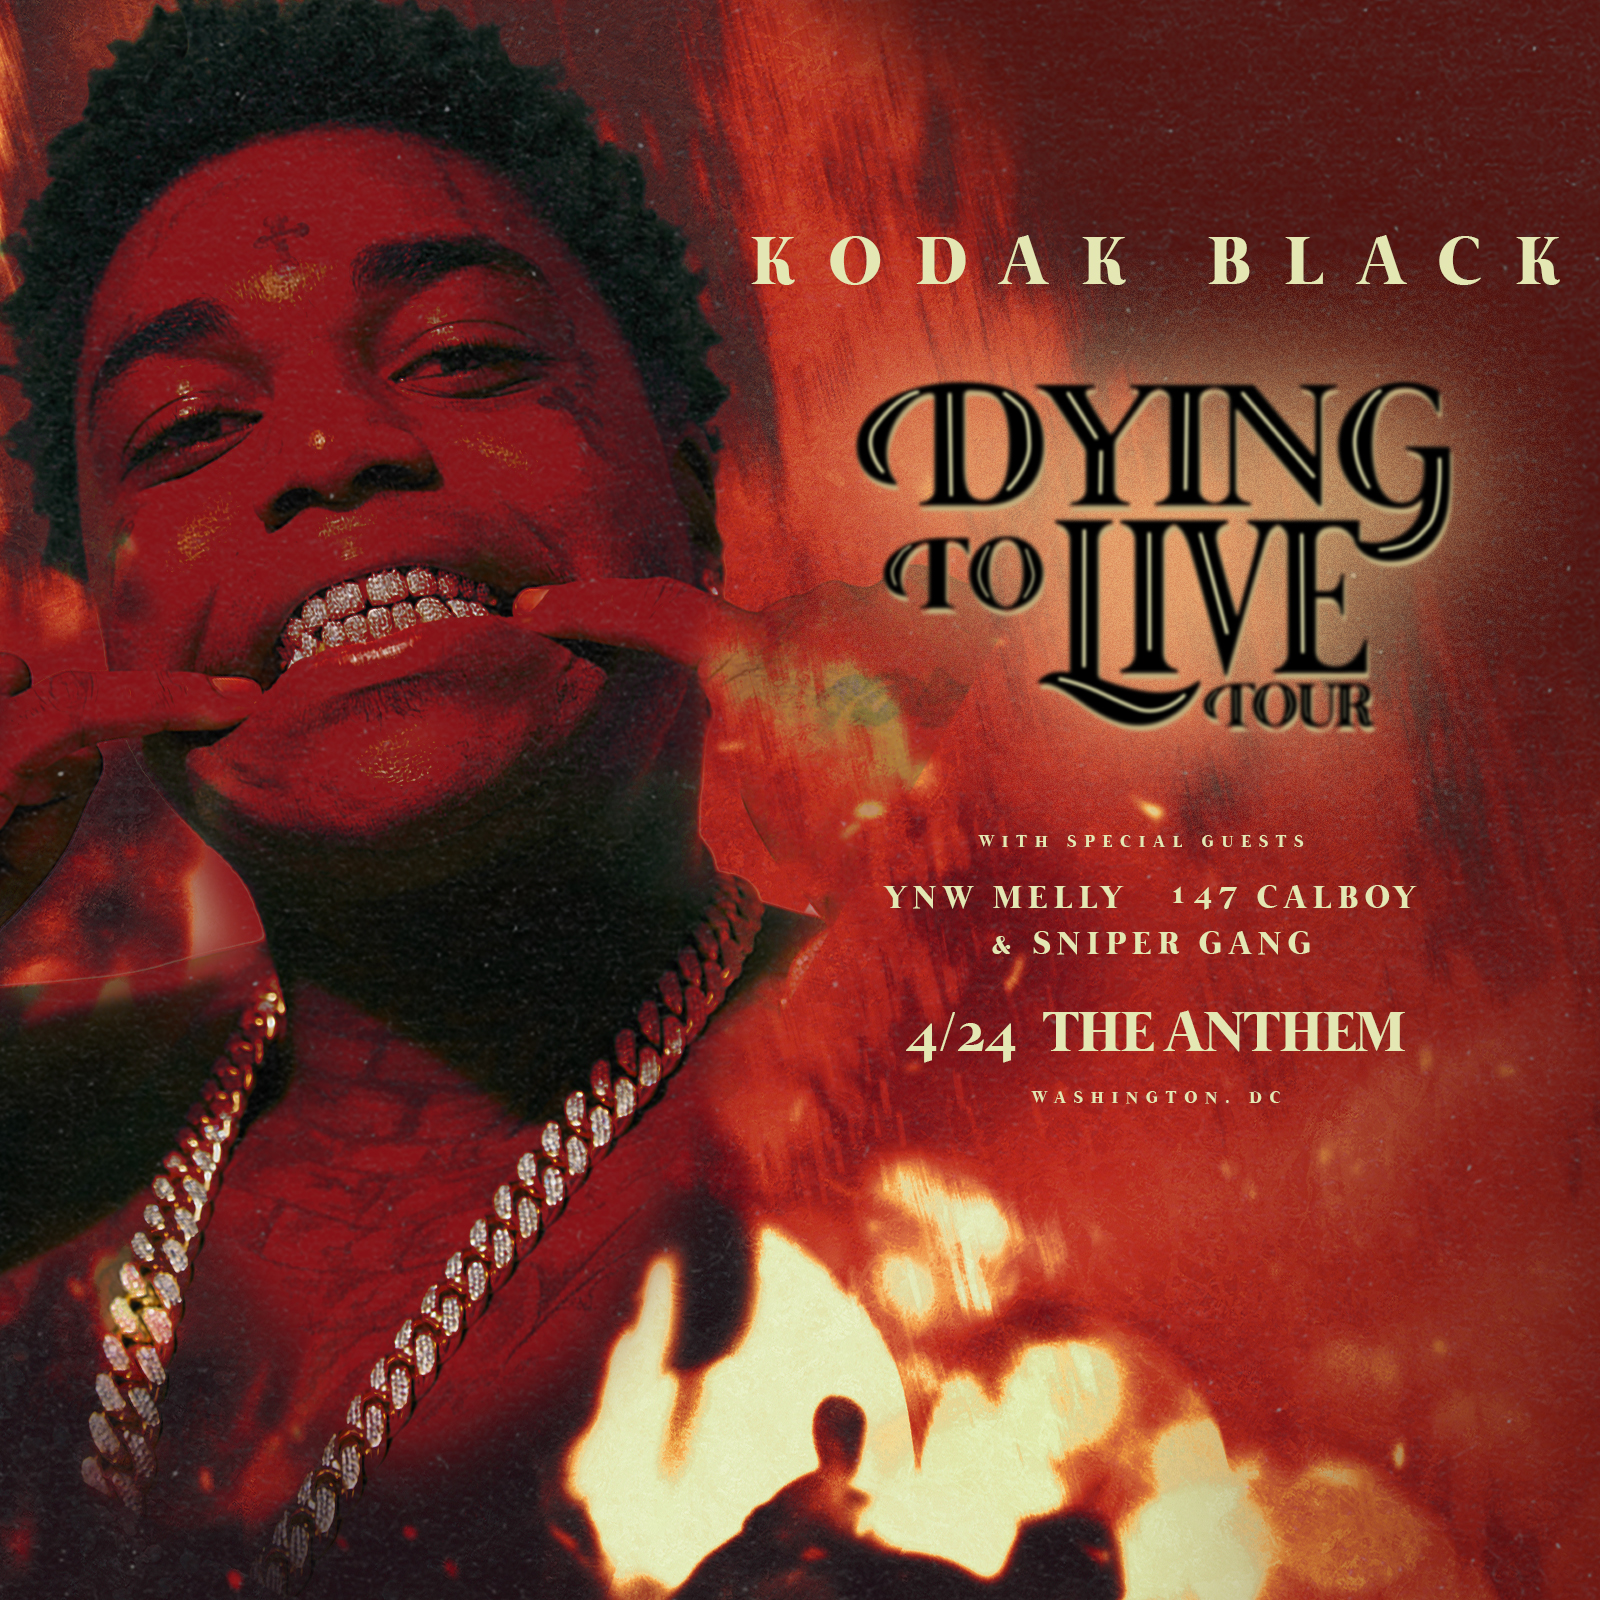 Kodak Black Dying To Live Tour